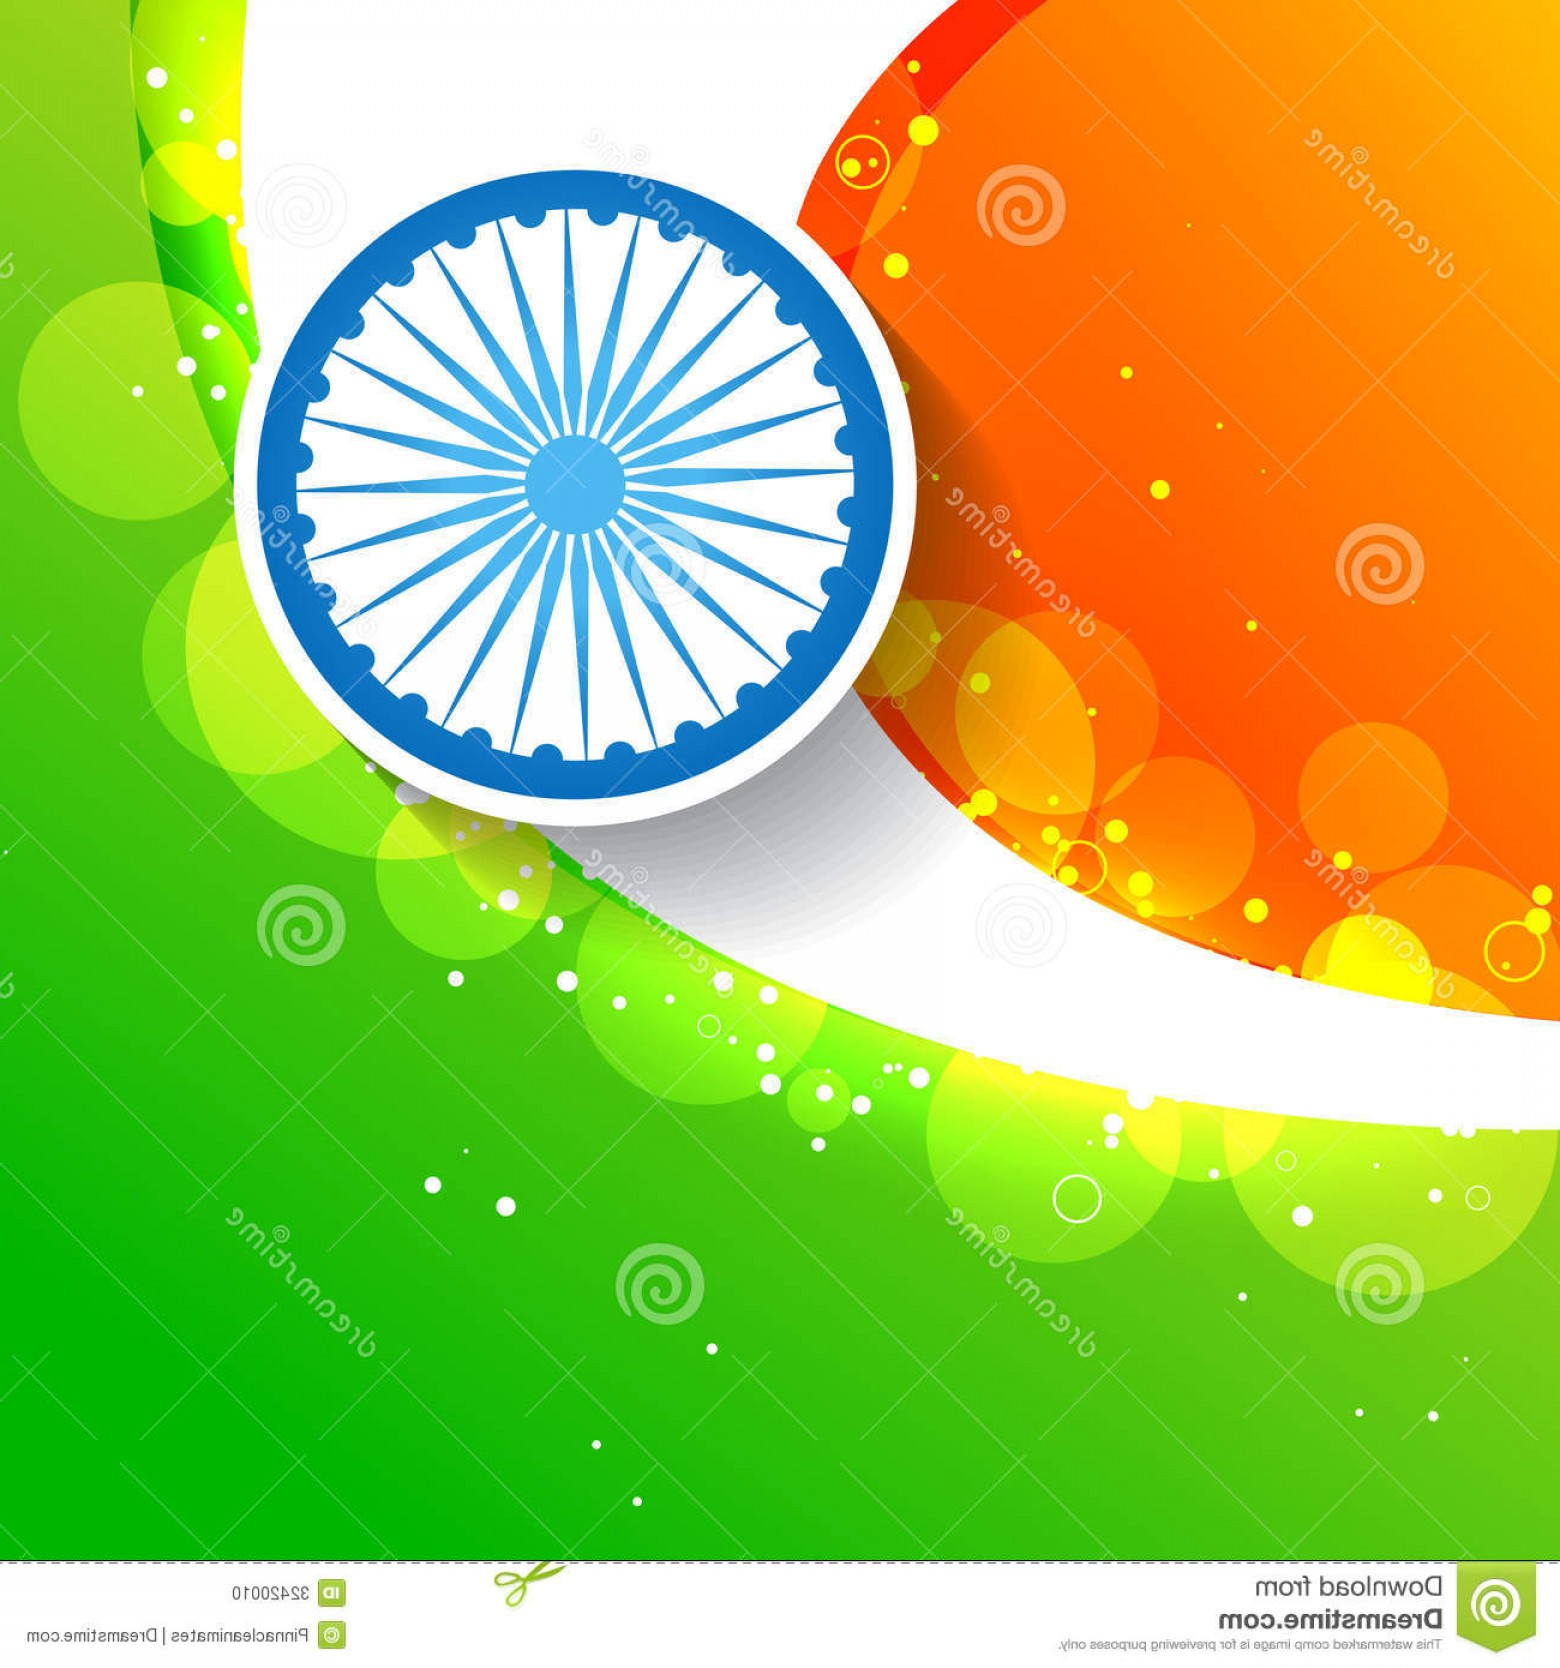 India Flag Vector: Stock Photo Stylish Creative Indian Flag Vector Design Image